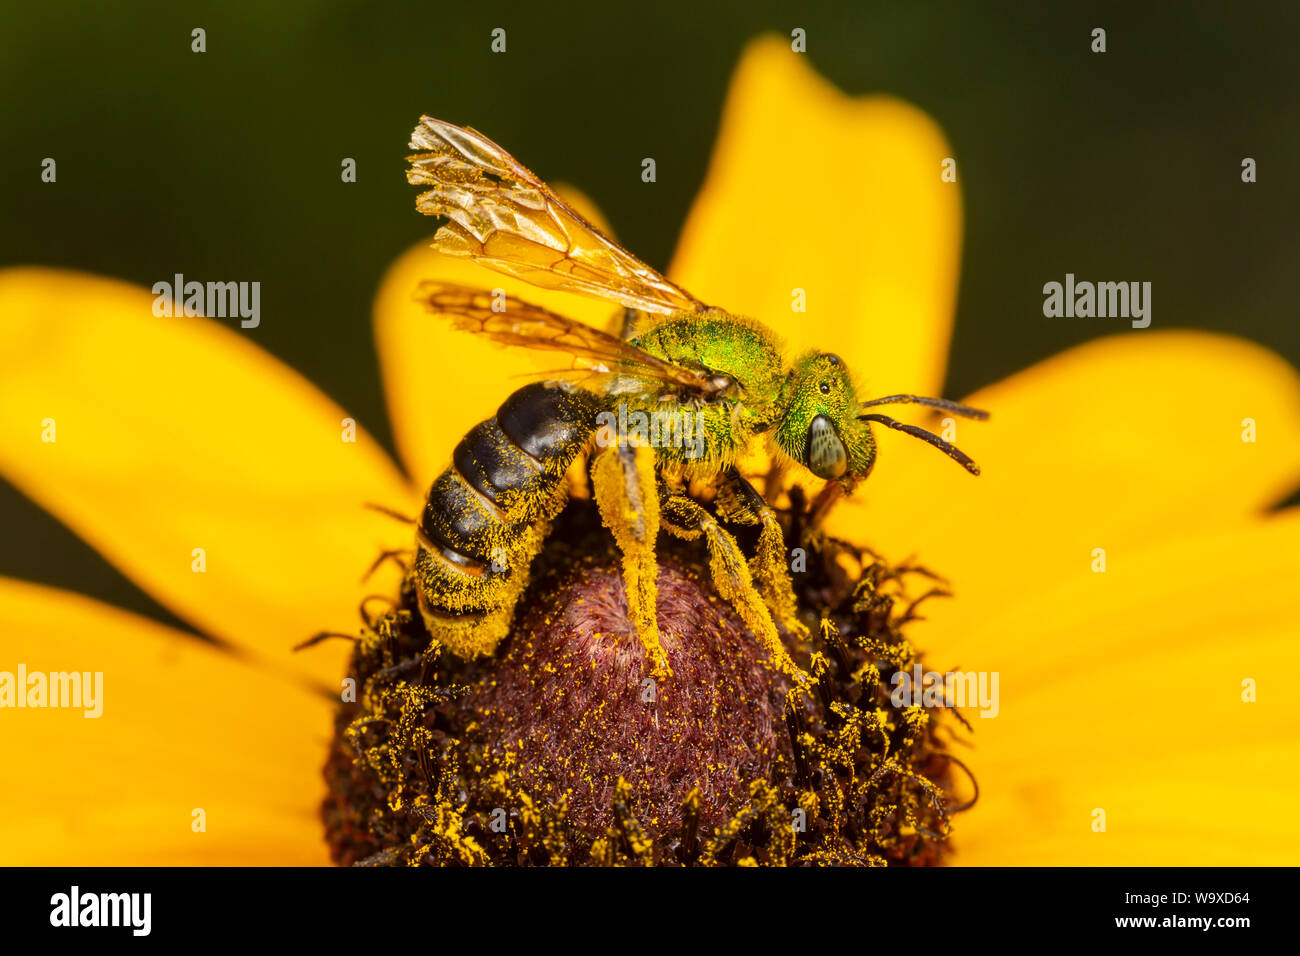 A female Bicolored Striped-Sweat Bee (Agapostemon virescens) collects nectar and pollen on a Black-eyed Susan flower. Stock Photo